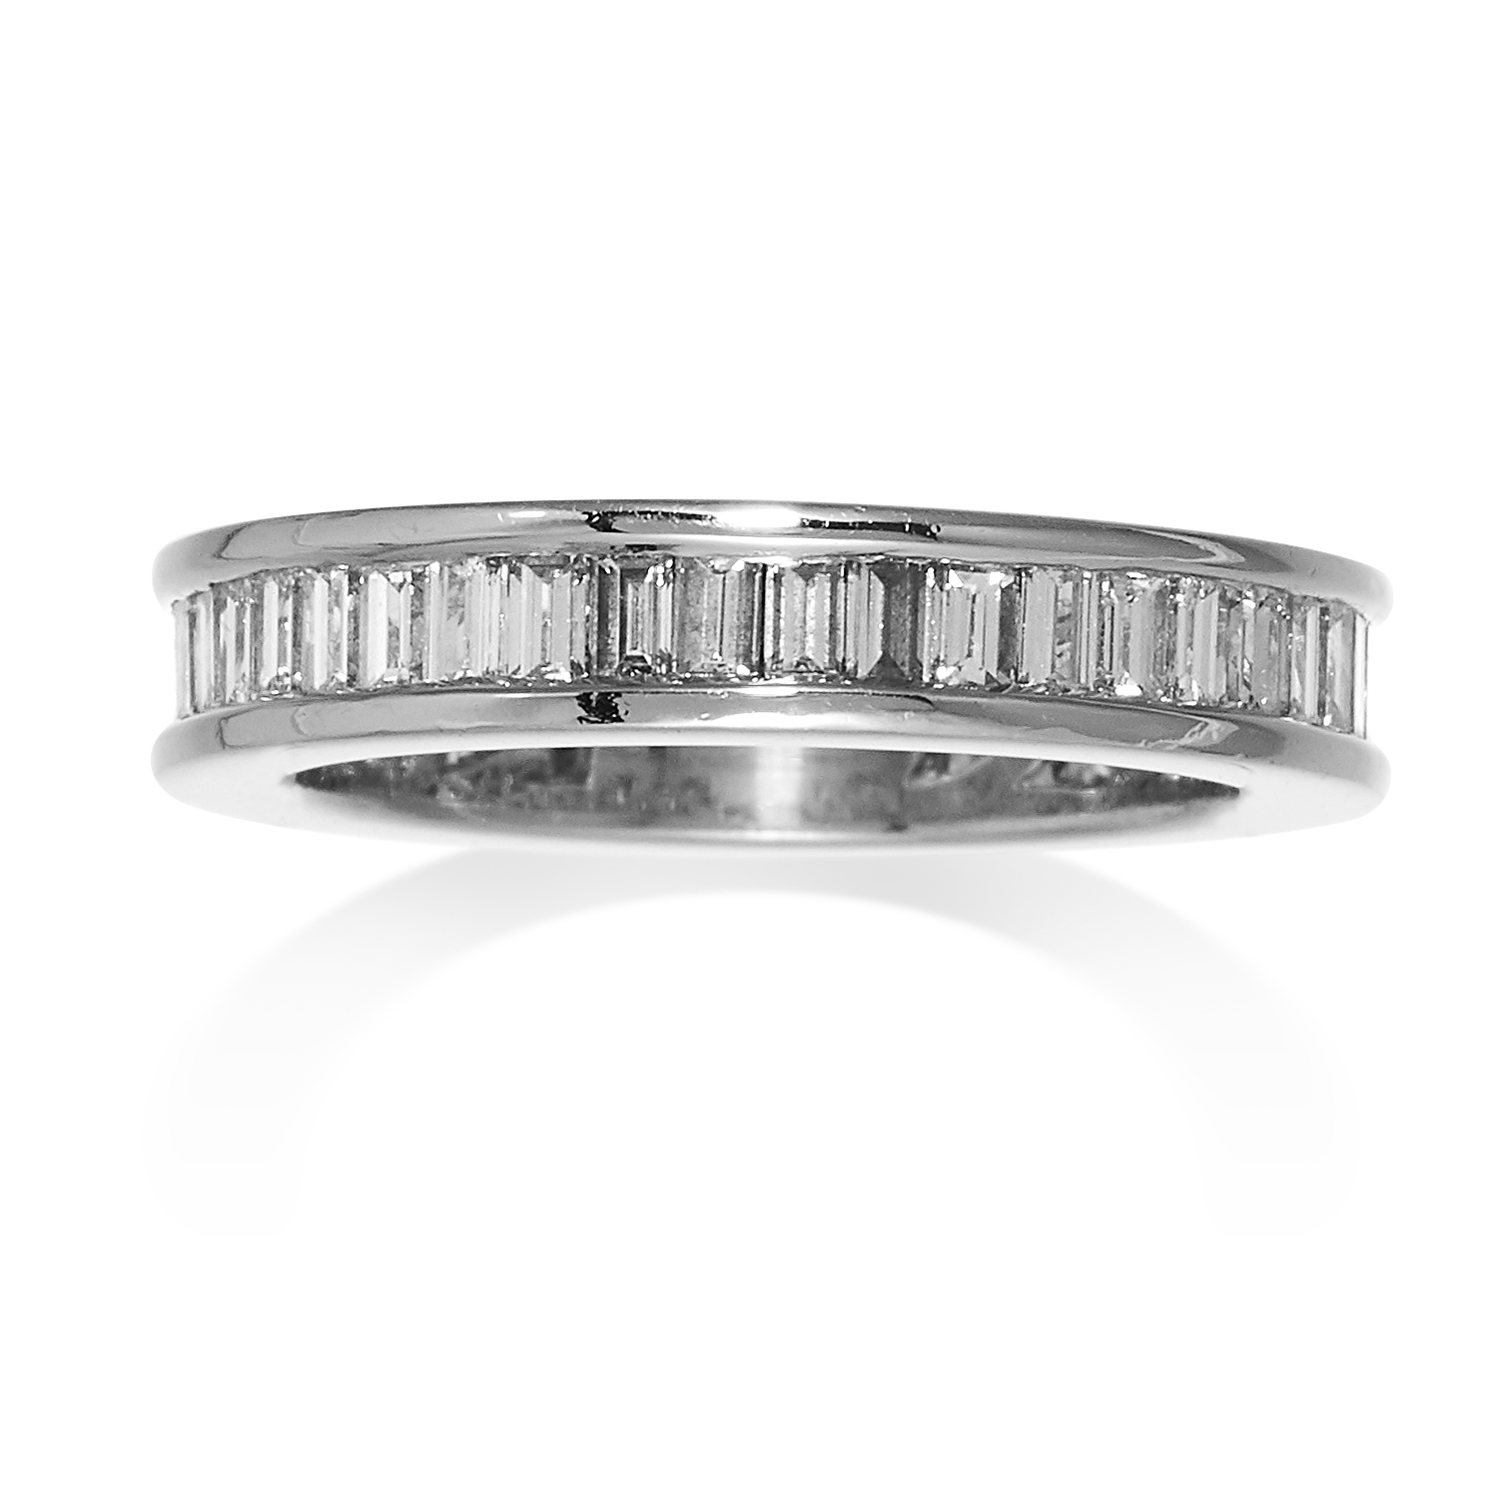 A DIAMOND ETERNITY RING in gold or platinum, jewelled with emerald cut diamonds, unmarked, size